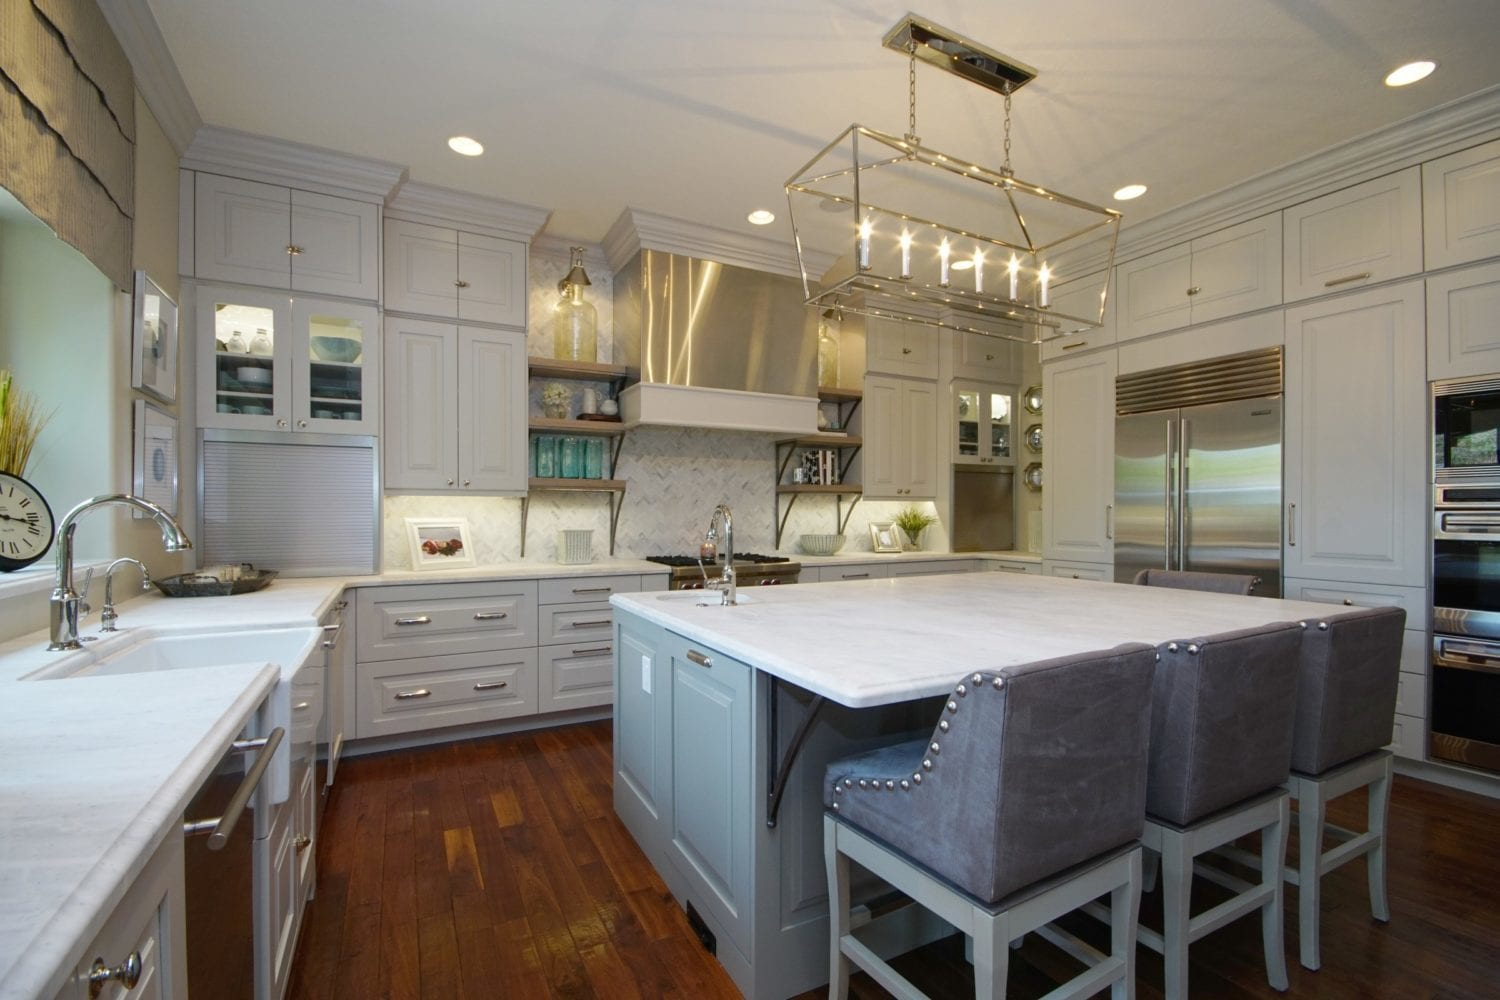 Salt Lake City Countertops Extraordinary Utah Home Entertainers Dream In Salt Lake City